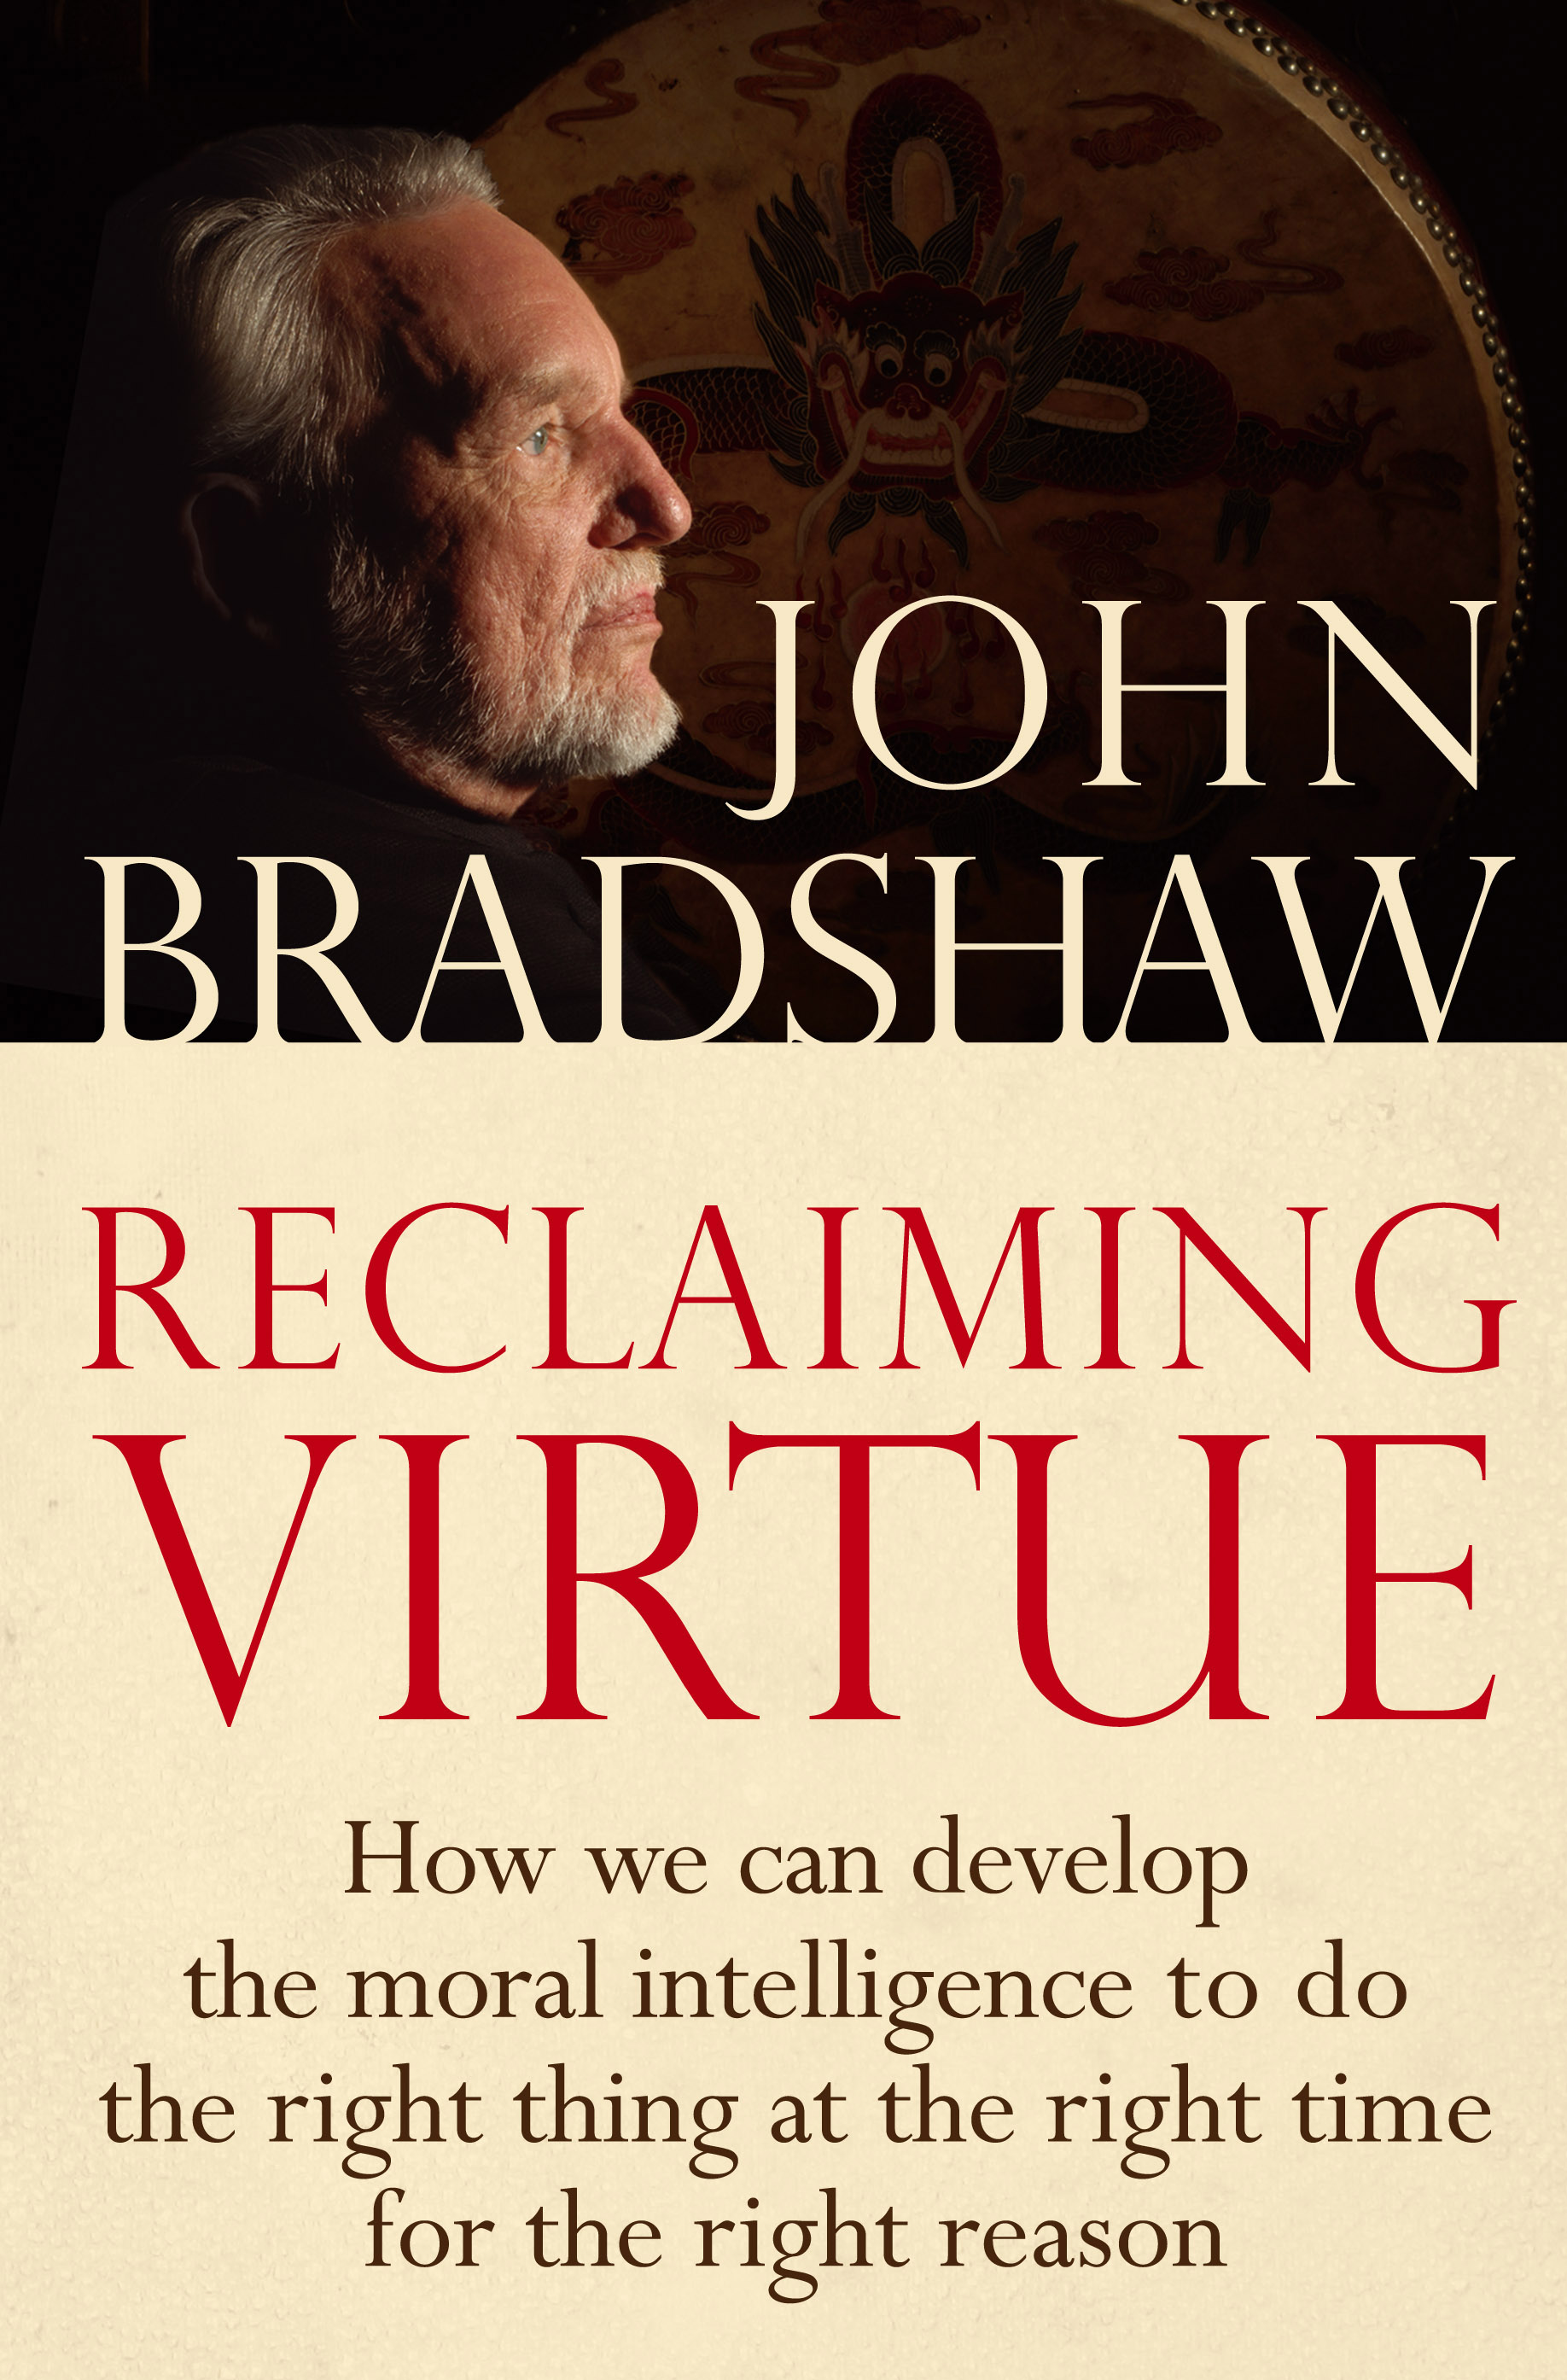 Reclaiming Virtue How we can develop the moral intelligence to do the right thing at the right time for the right reason